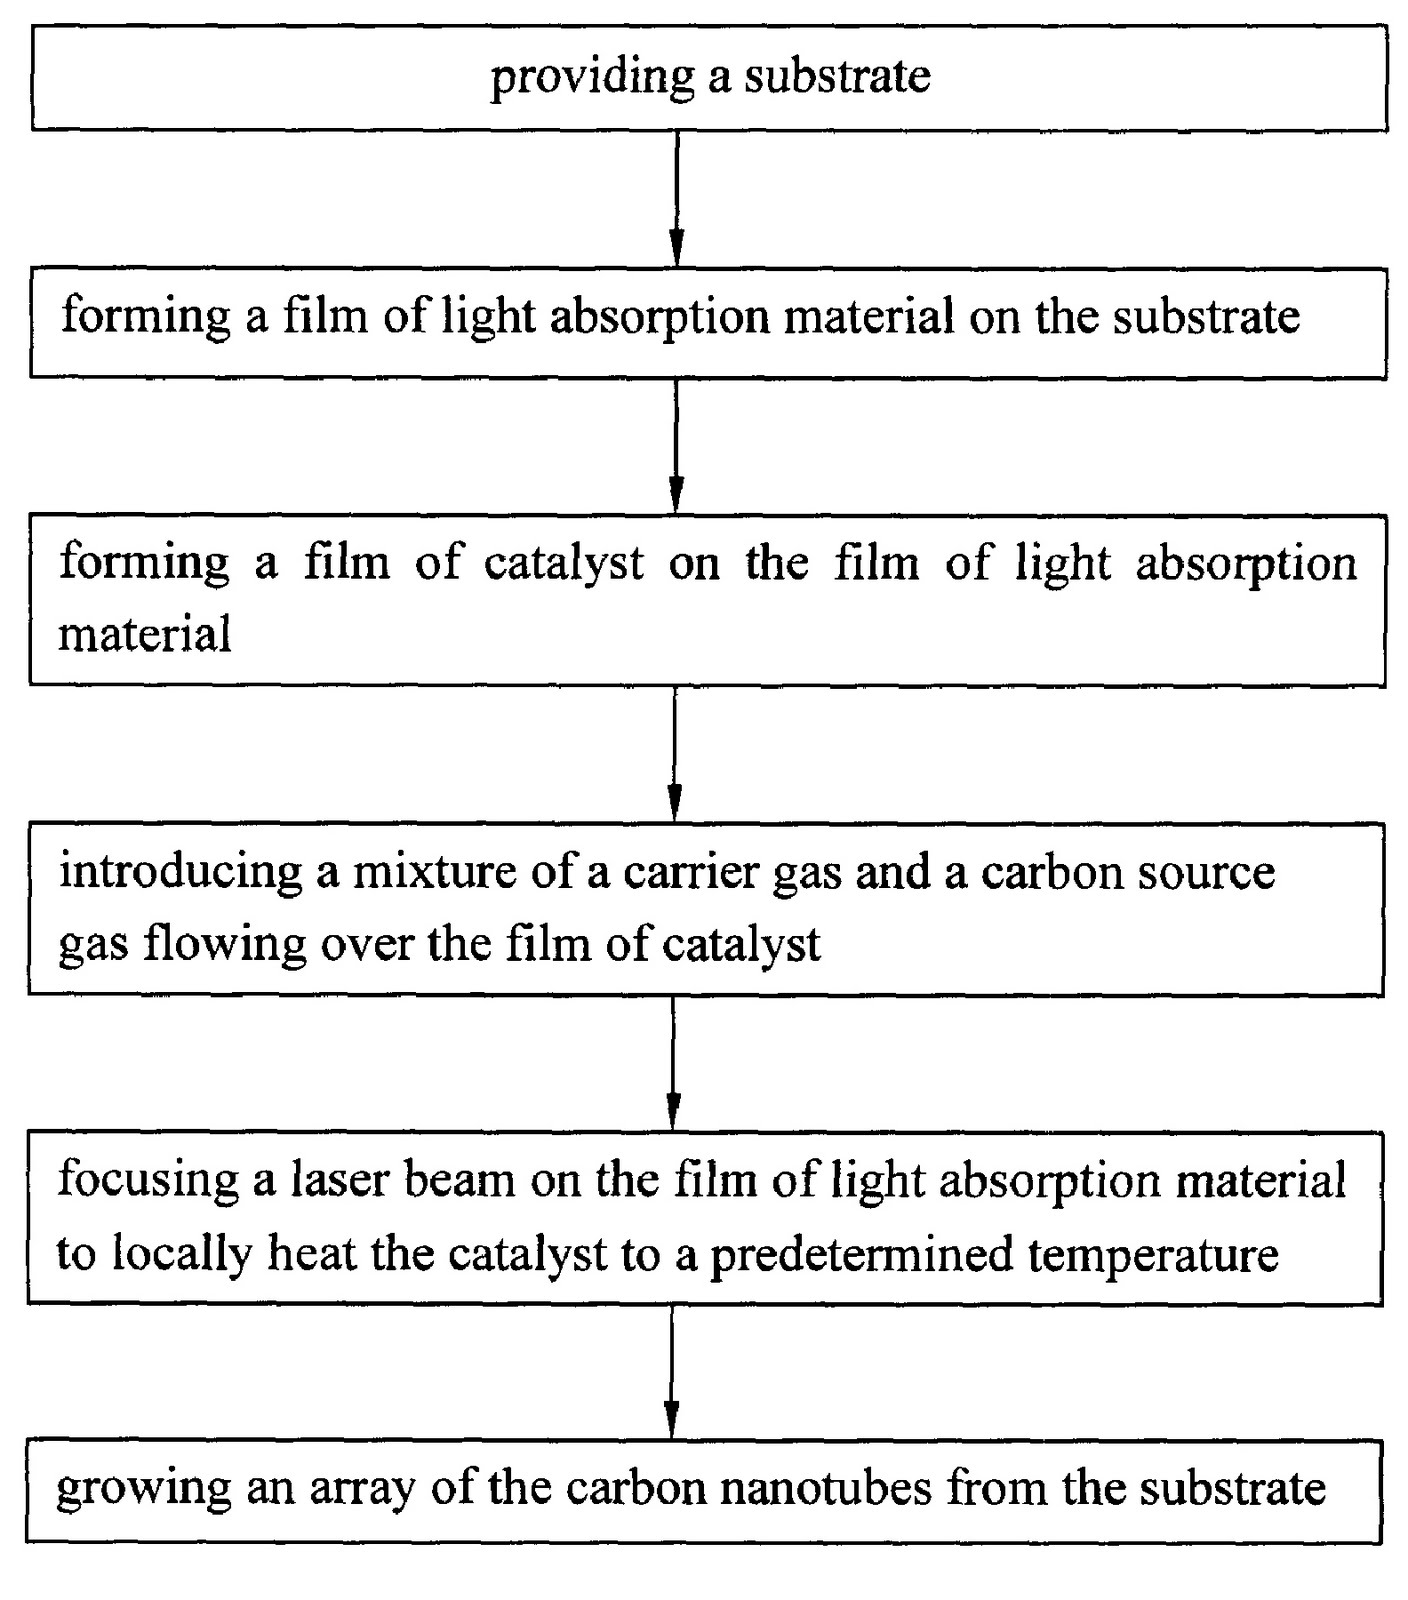 Laser based method for growing an array of carbon nanotubes 1 is a flow chart of a method for making an array of carbon nanotubes nvjuhfo Gallery